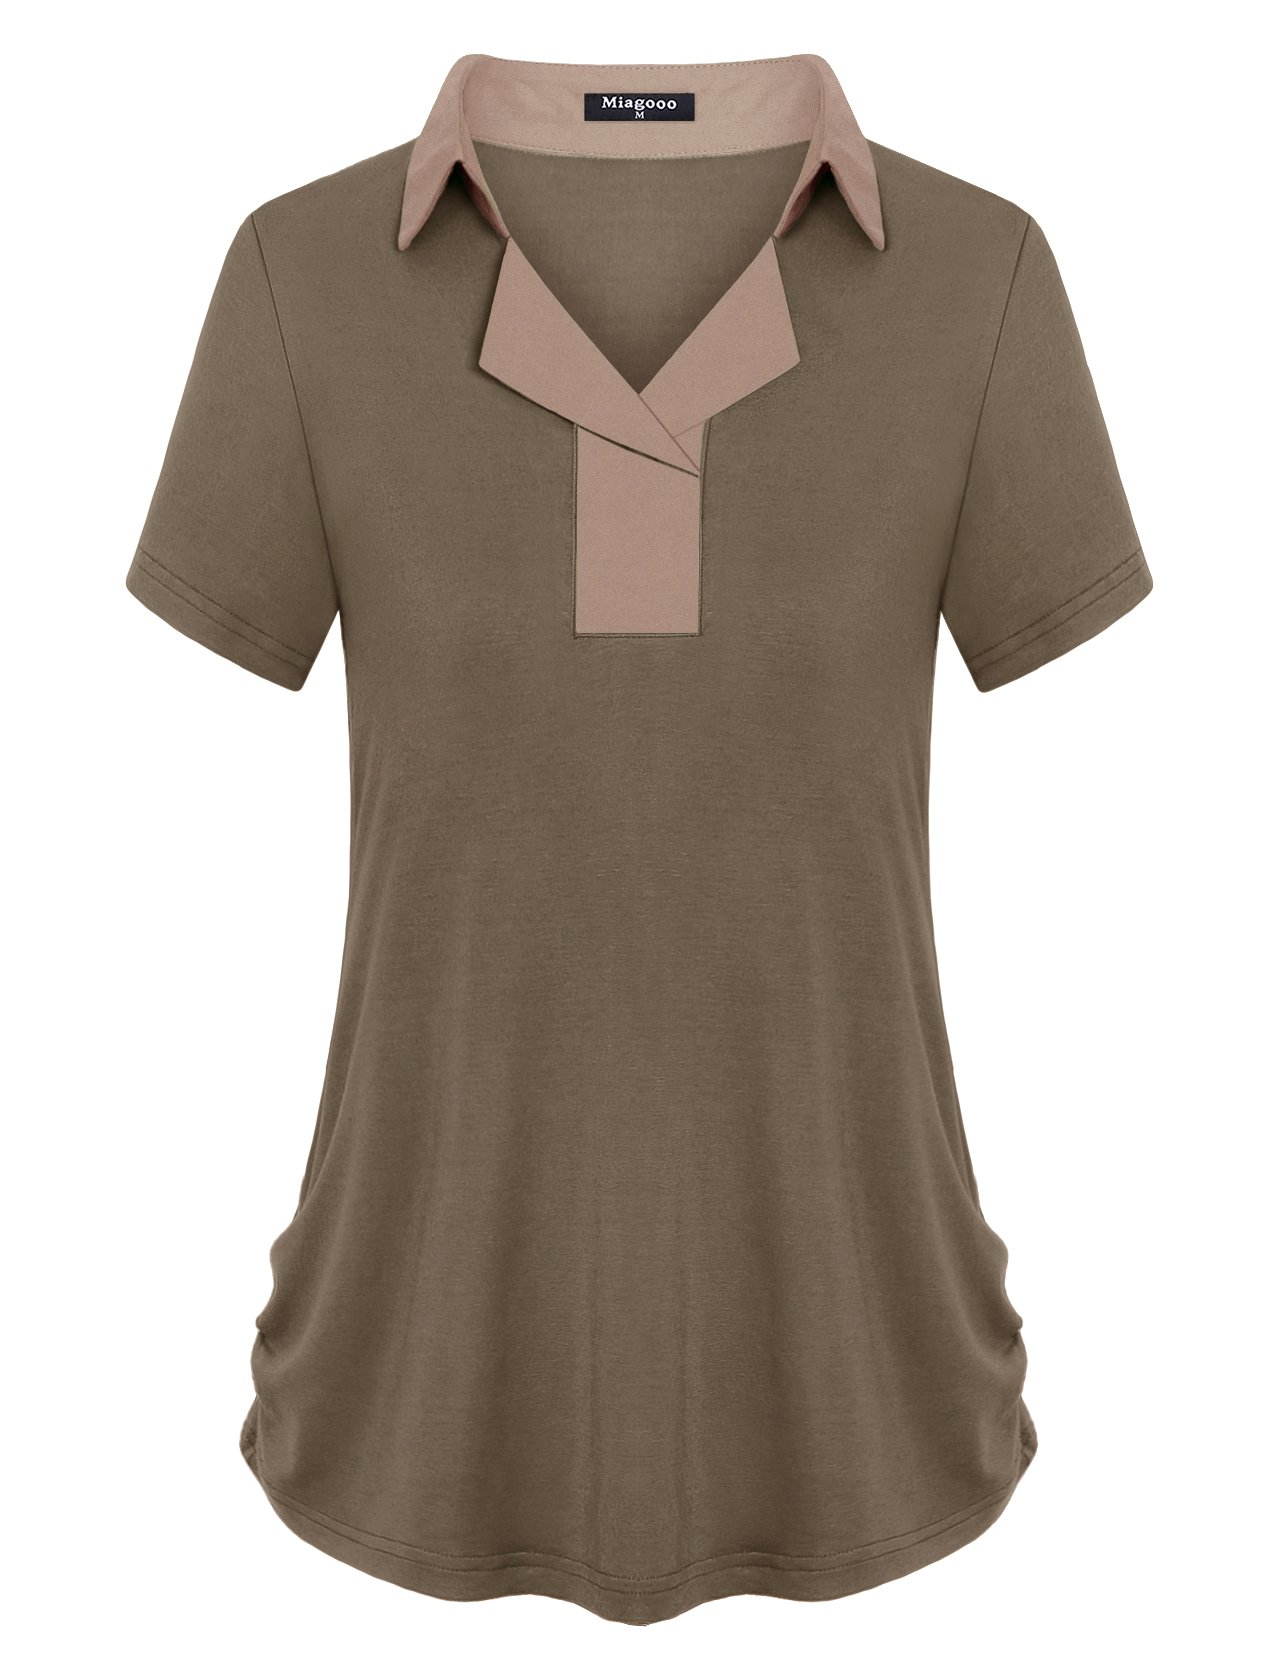 Miagooo Golf Shirts for Womens, Women's Shirts Notched Collar Button Down V Neck Short Sleeve Tunic Tops Versatile Retro Style Pleated Side Curved Hem Hipster Tshirt (Mocha,X-Large)